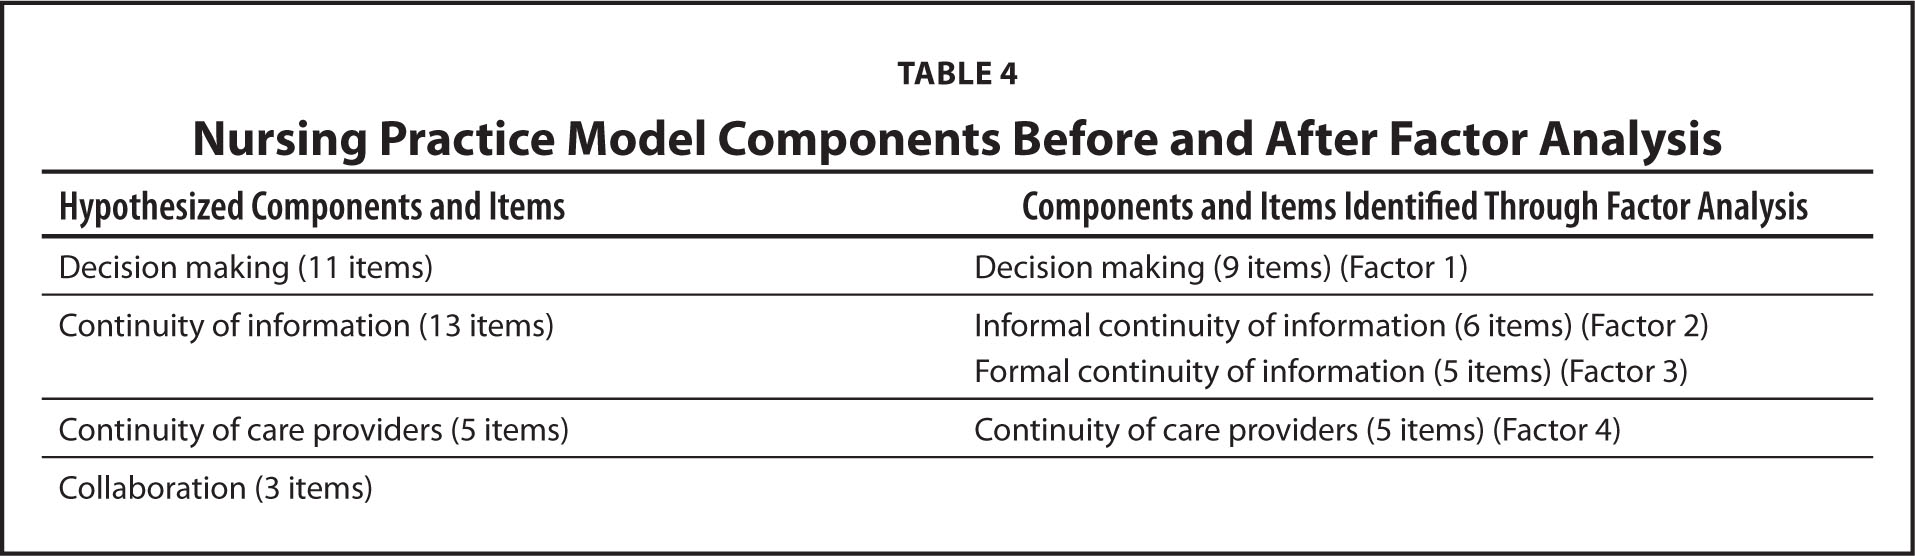 Nursing Practice Model Components Before and After Factor Analysis